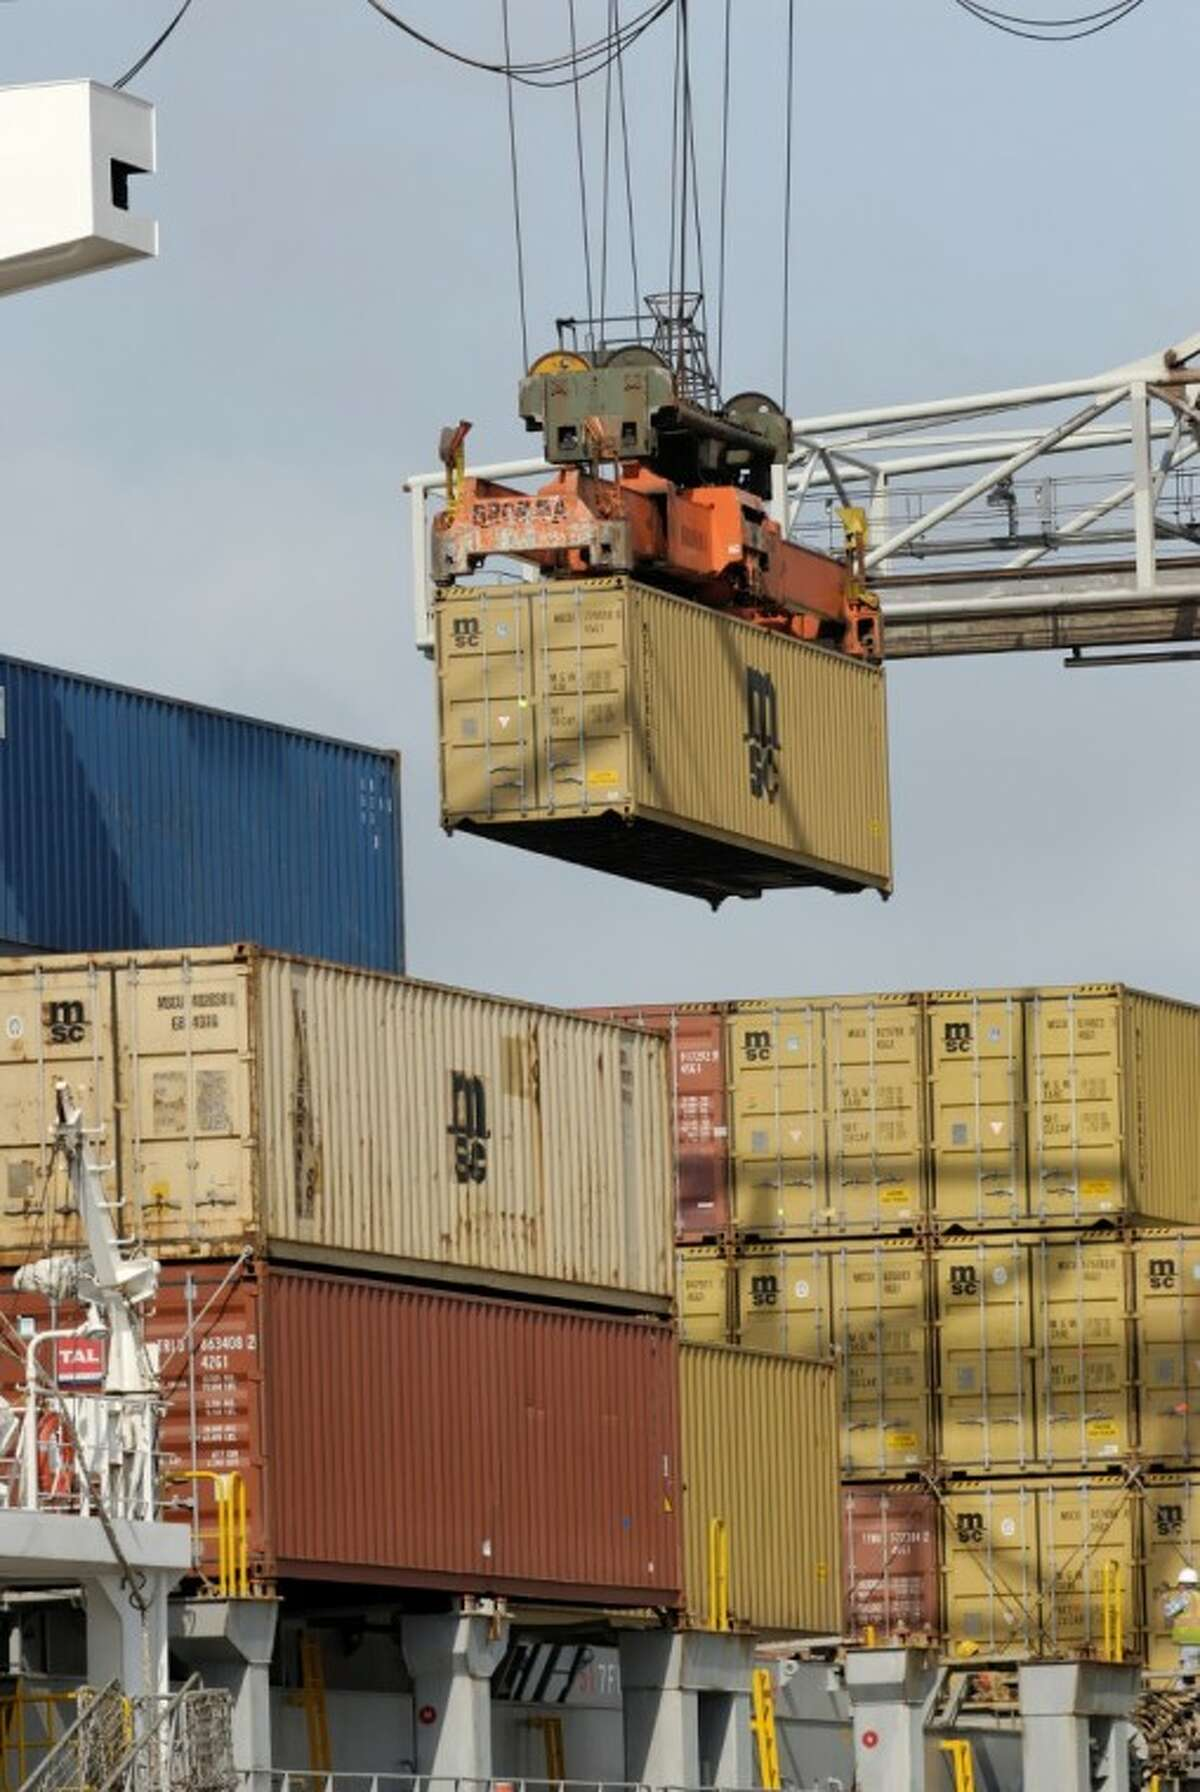 The port has already led the United States in receiving waterborne tonnage from foreign countries 14 years in a row.